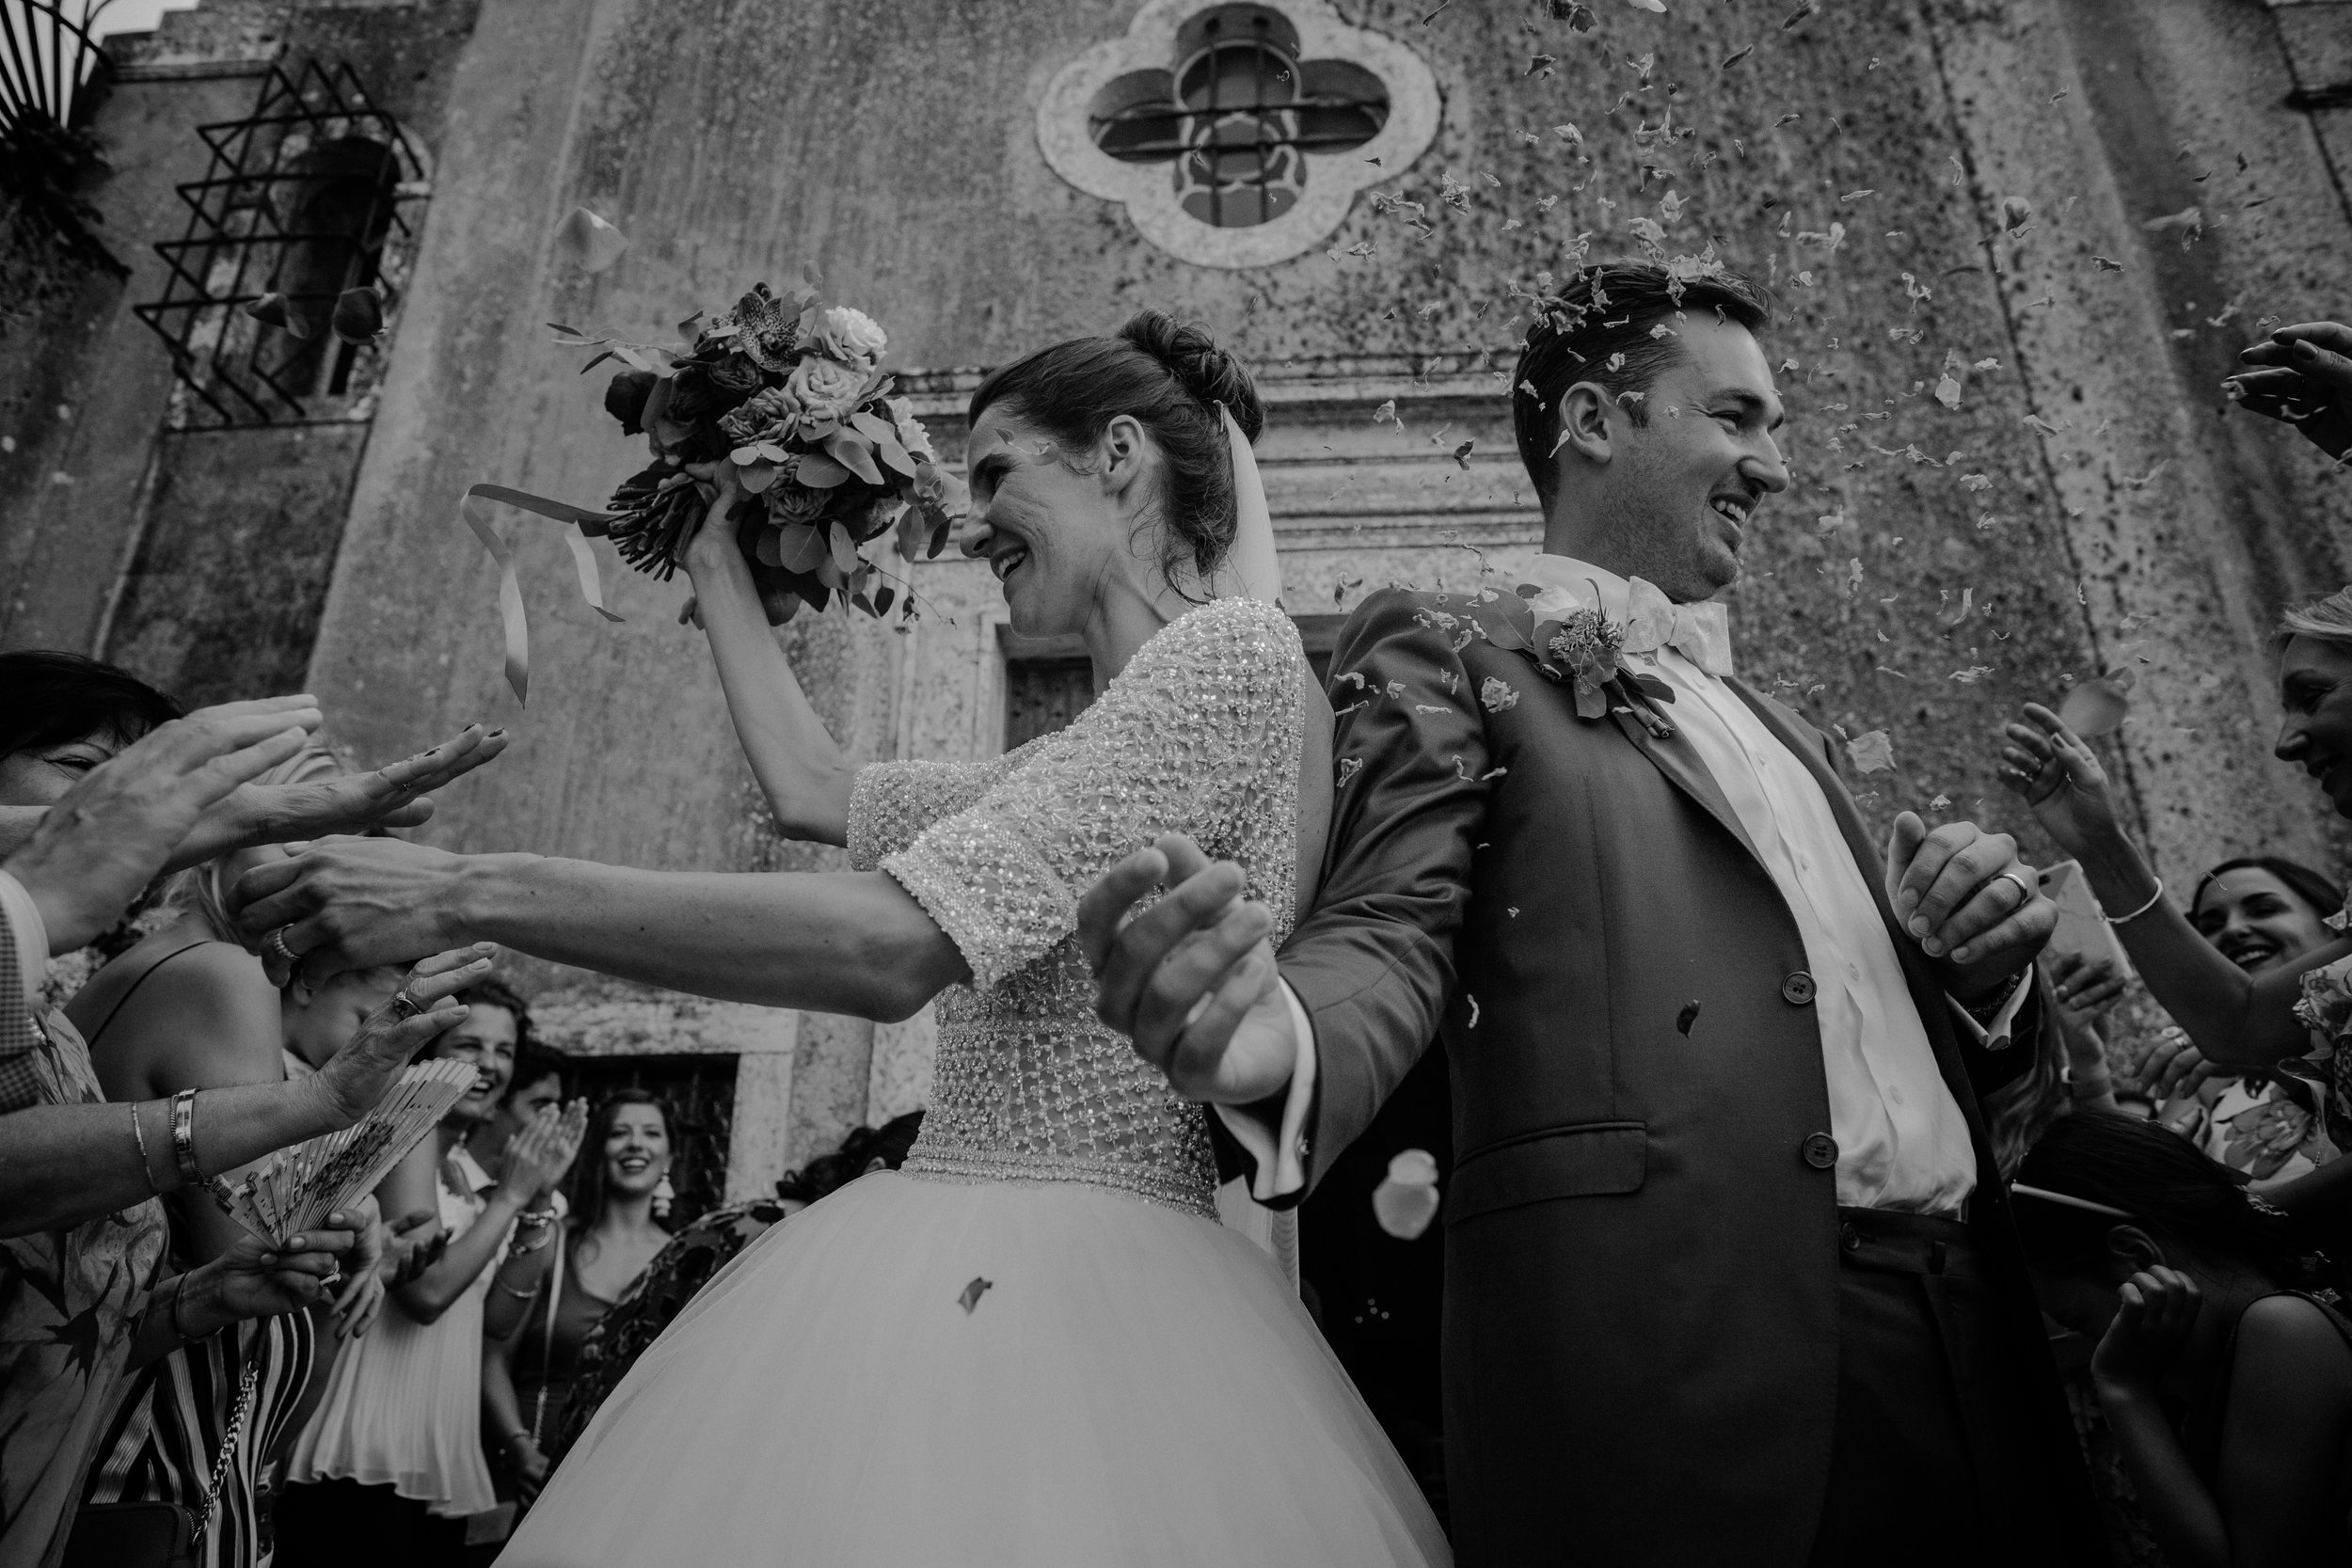 Lapela-photography-wedding-sintra-portugal-66.jpg